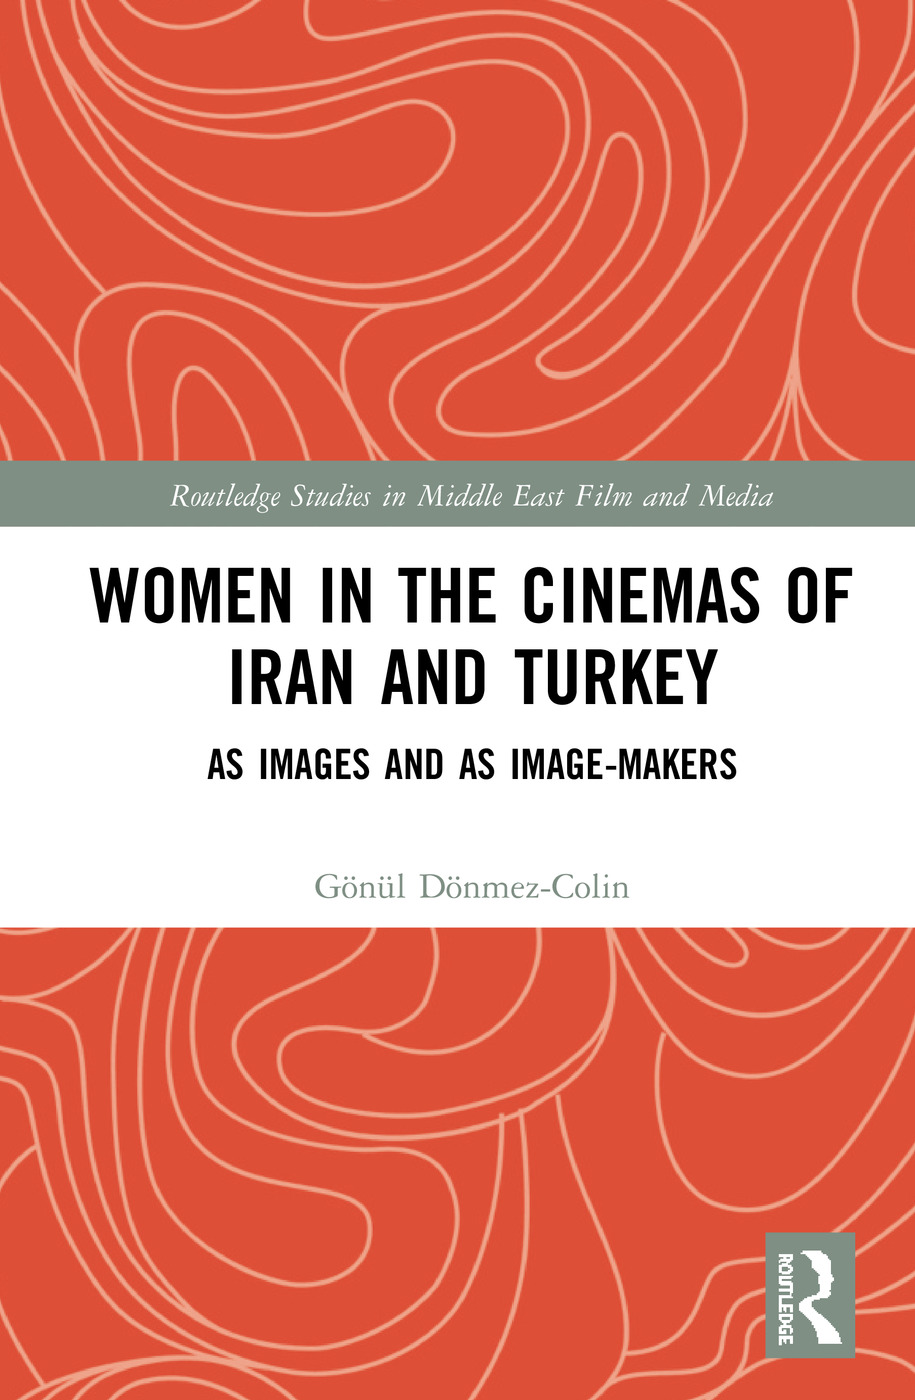 Women in the Cinemas of Iran and Turkey: As Images and as Image-Makers, 1st Edition (Hardback) book cover